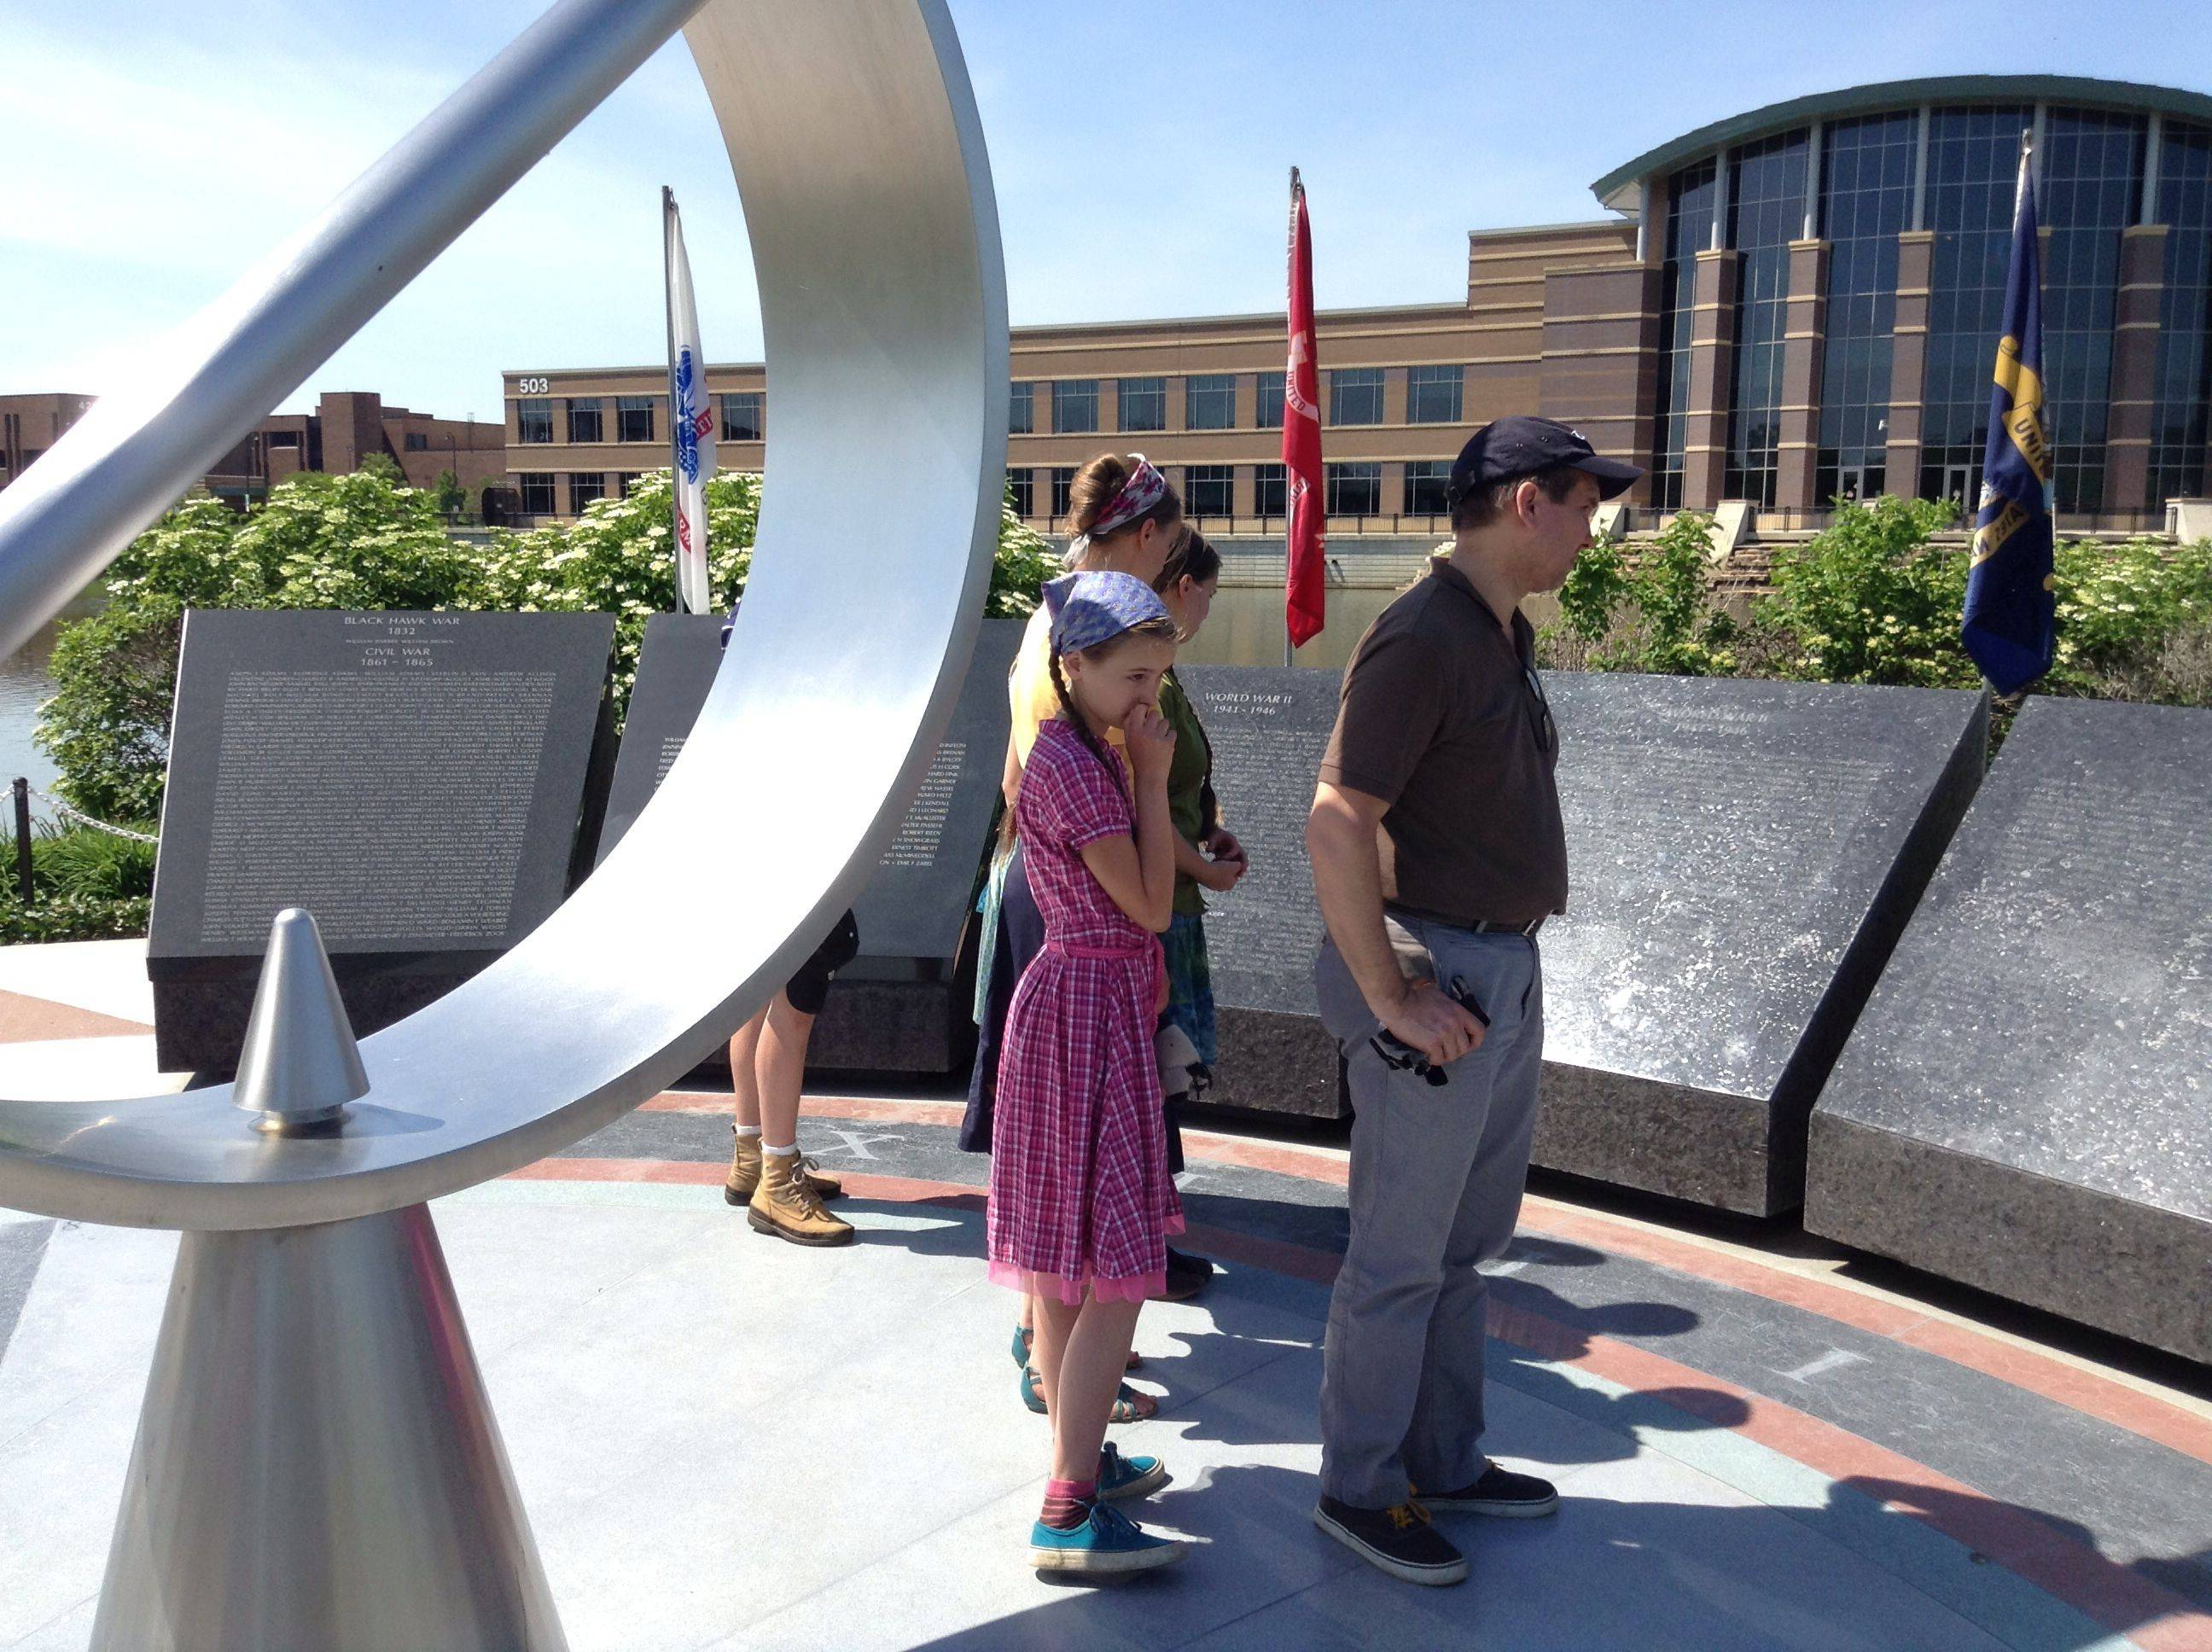 Visitors to the DuPage County Veterans' Memorial study the names of residents who were killed in World War II. Roughly 60 people attended a Memorial Day observance on Sunday at the memorial in Wheaton.